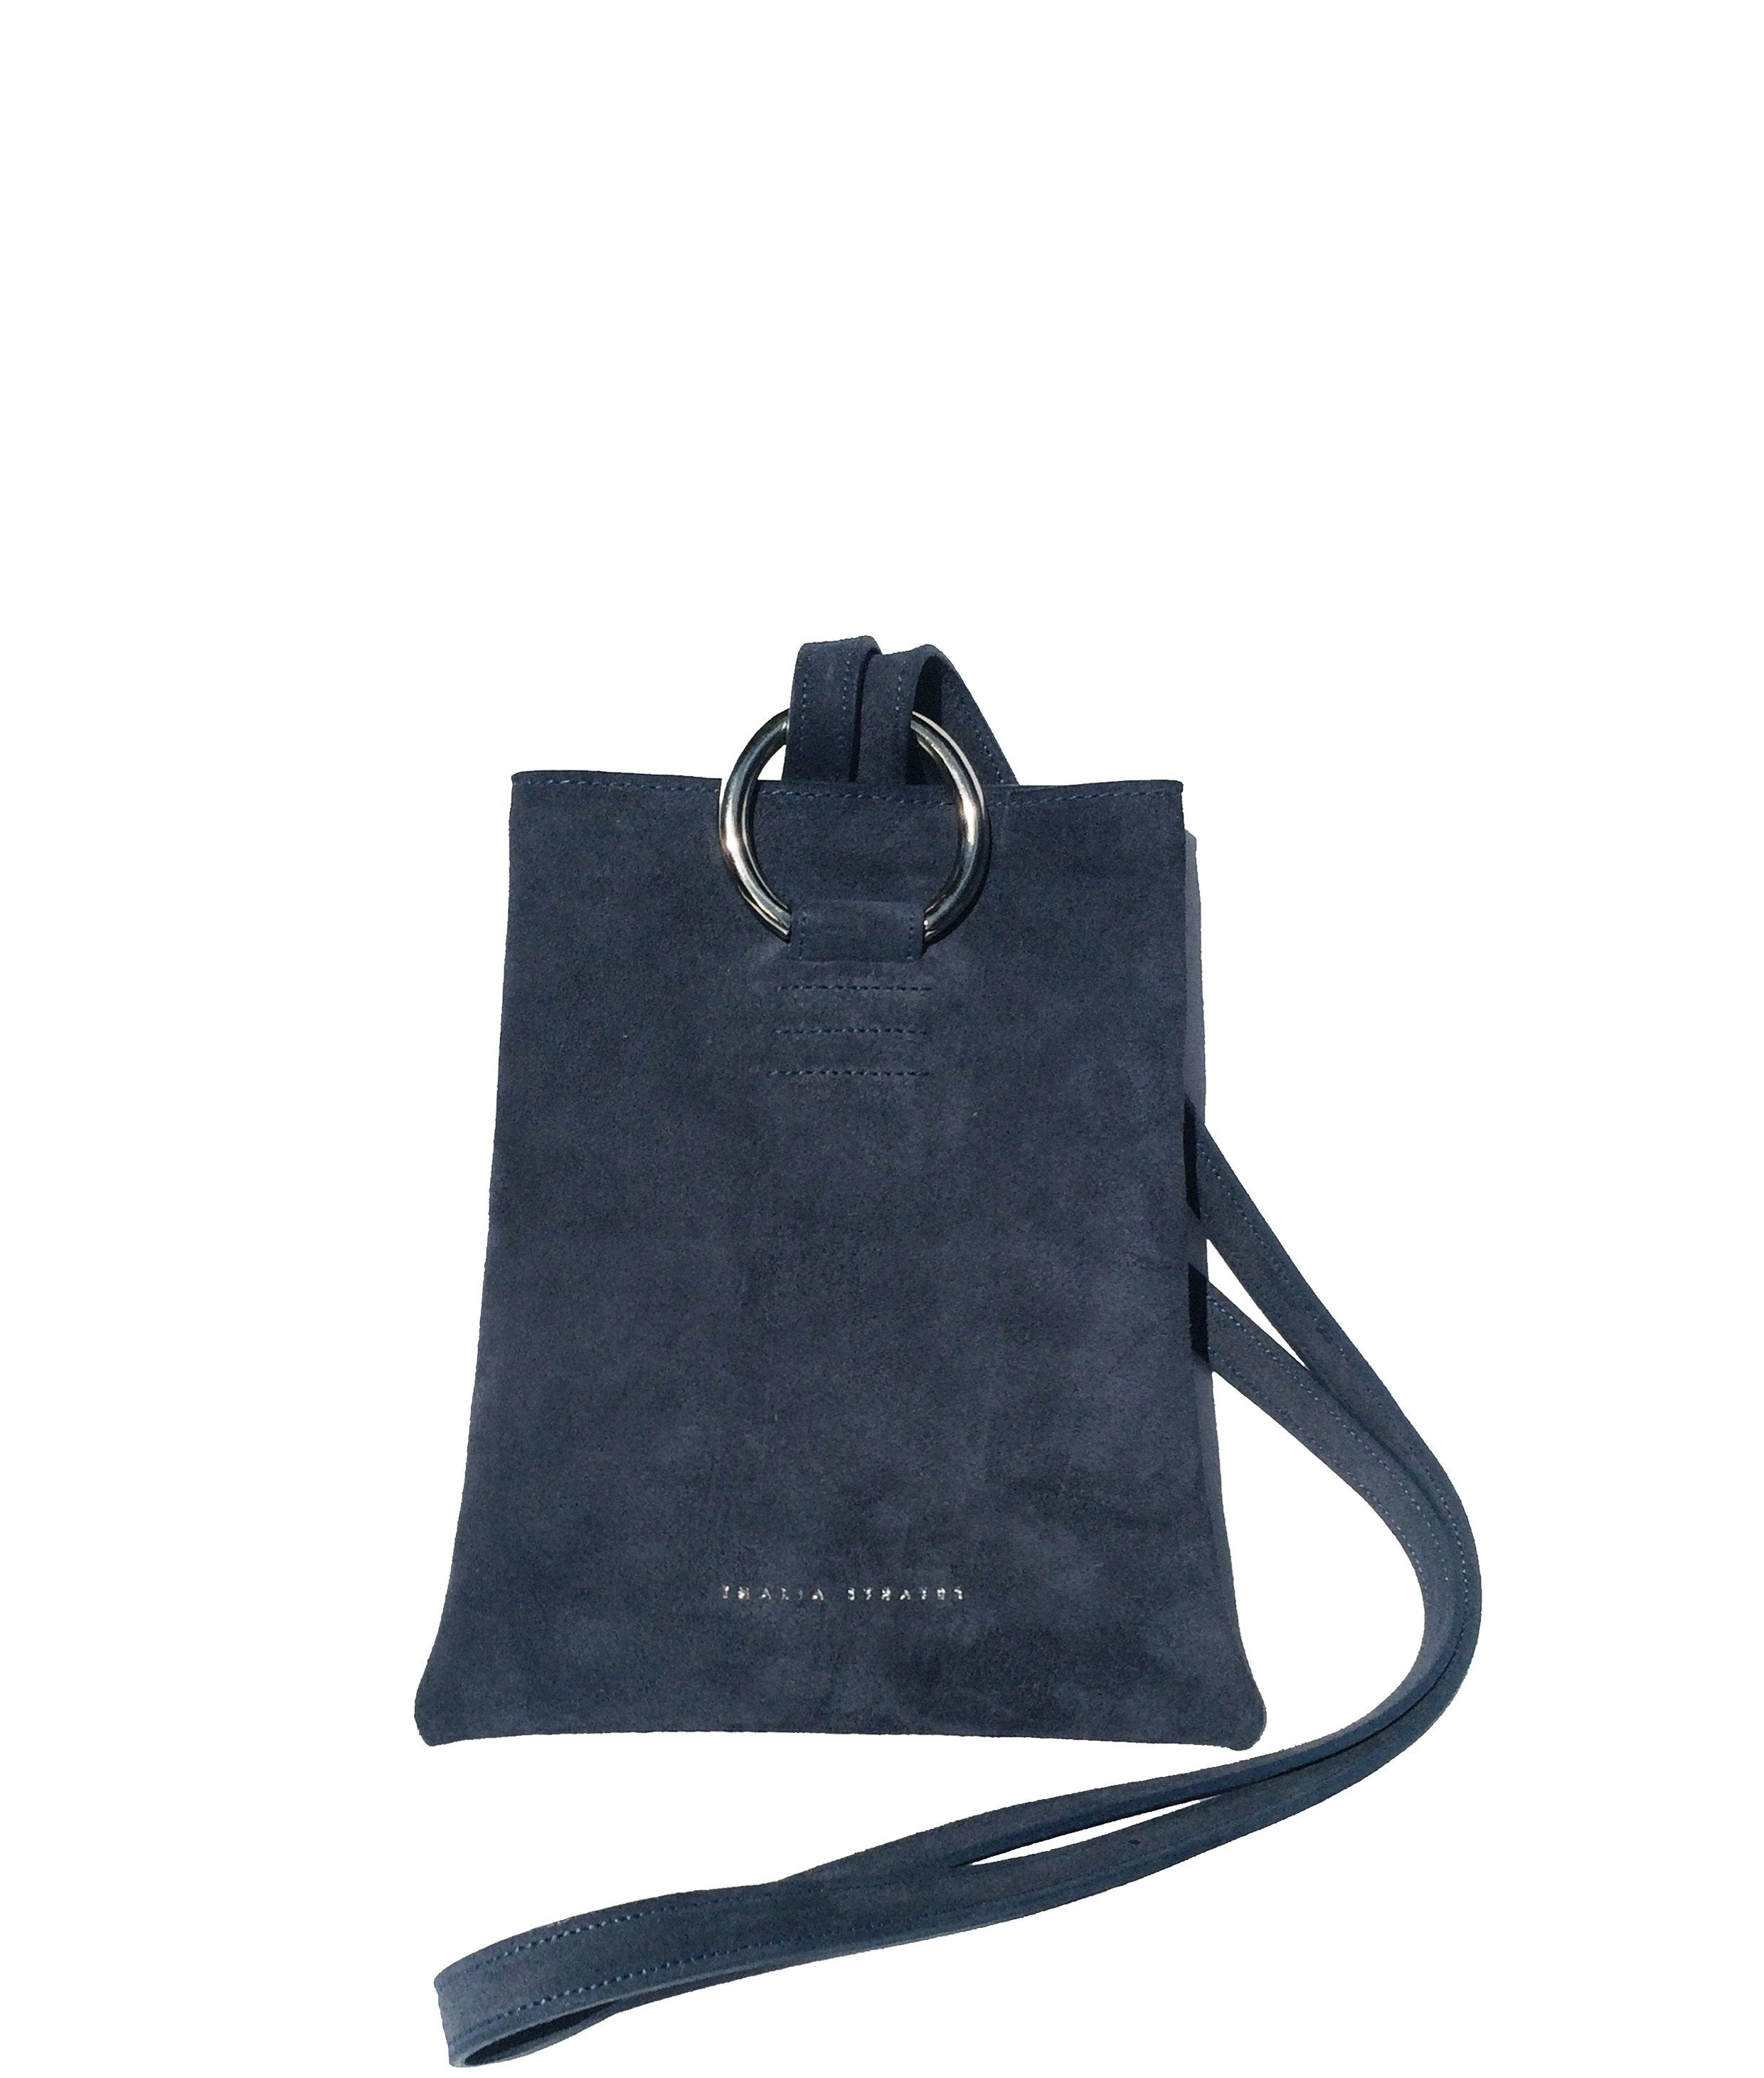 Athena Leather Bag - Indigo